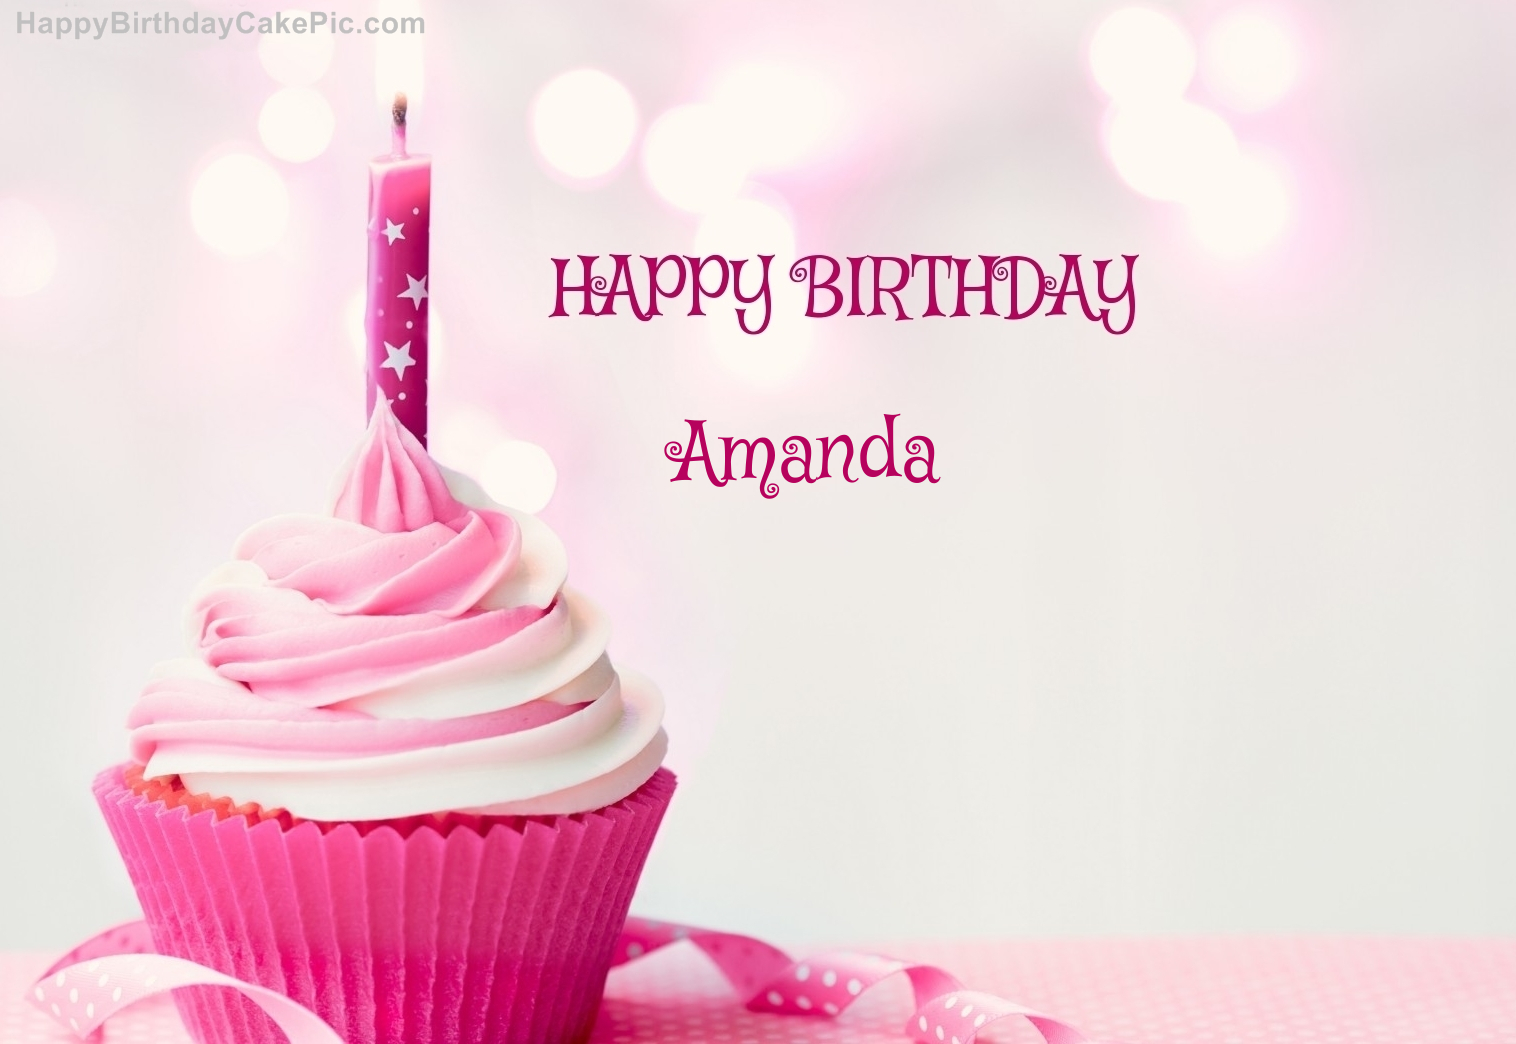 ️ Happy Birthday Cupcake Candle Pink Cake For Amanda